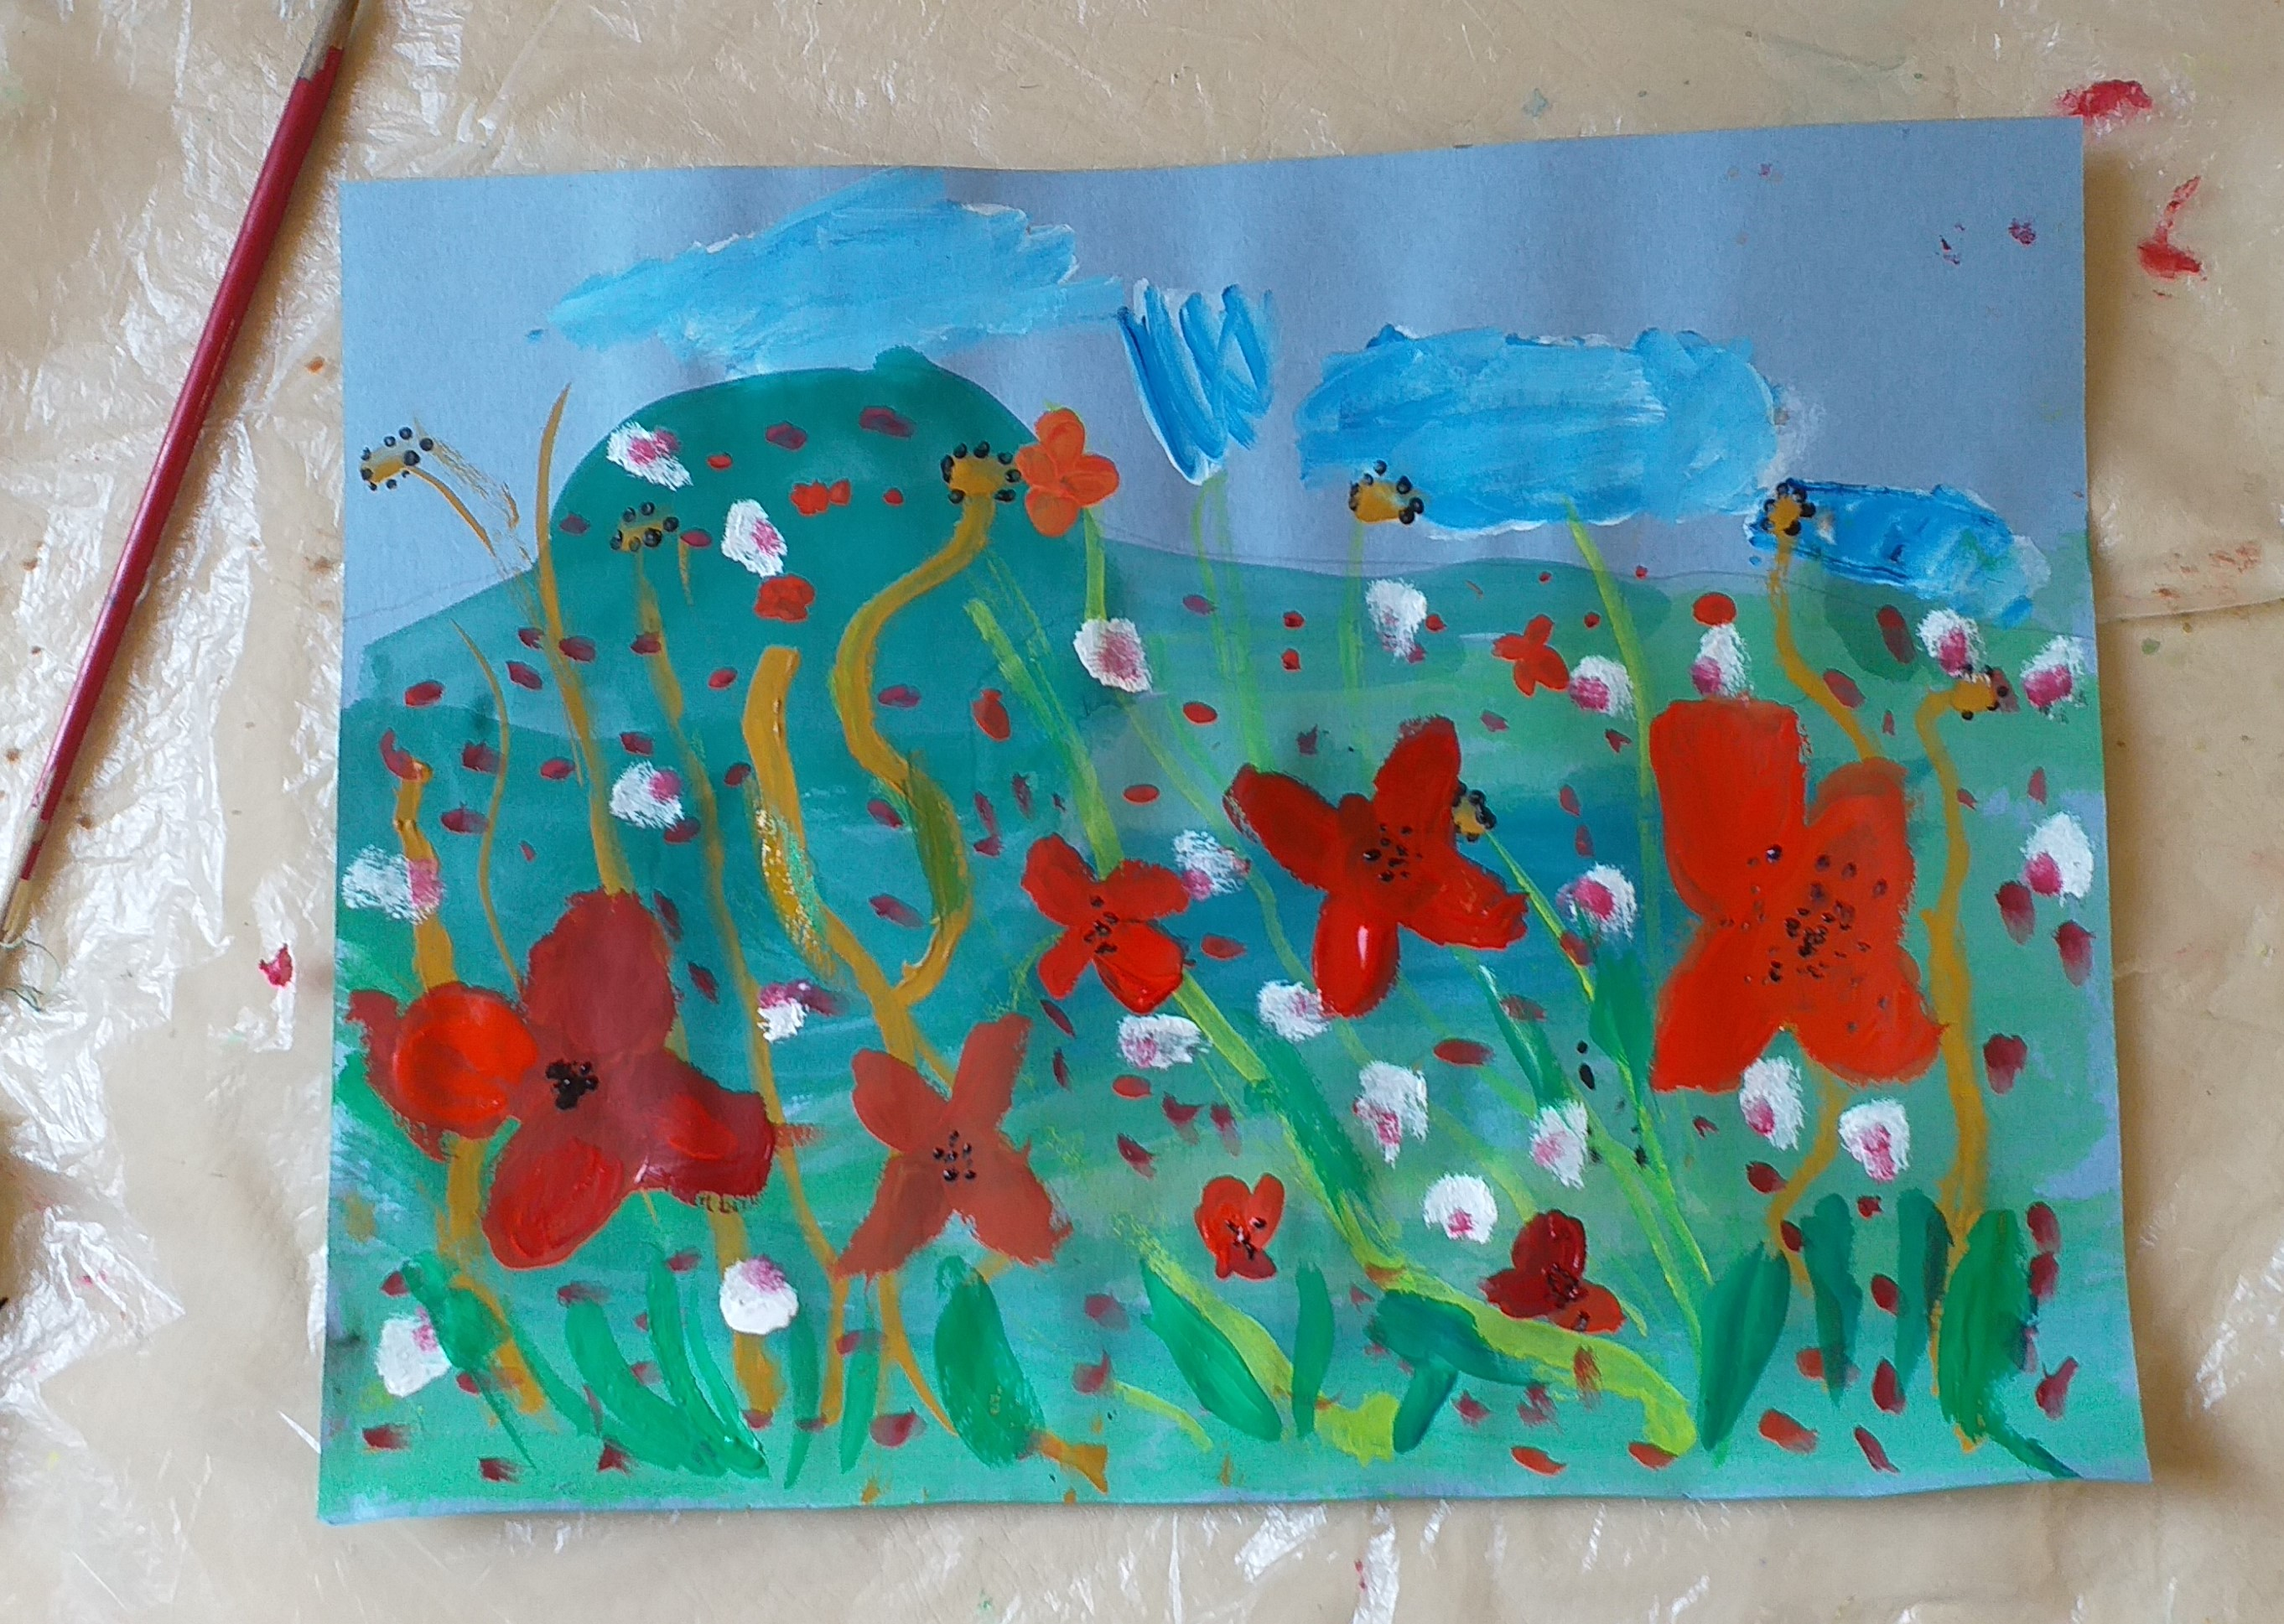 Young artist's painting created at Magic Wool Art and Craft Studio in Worcestershire